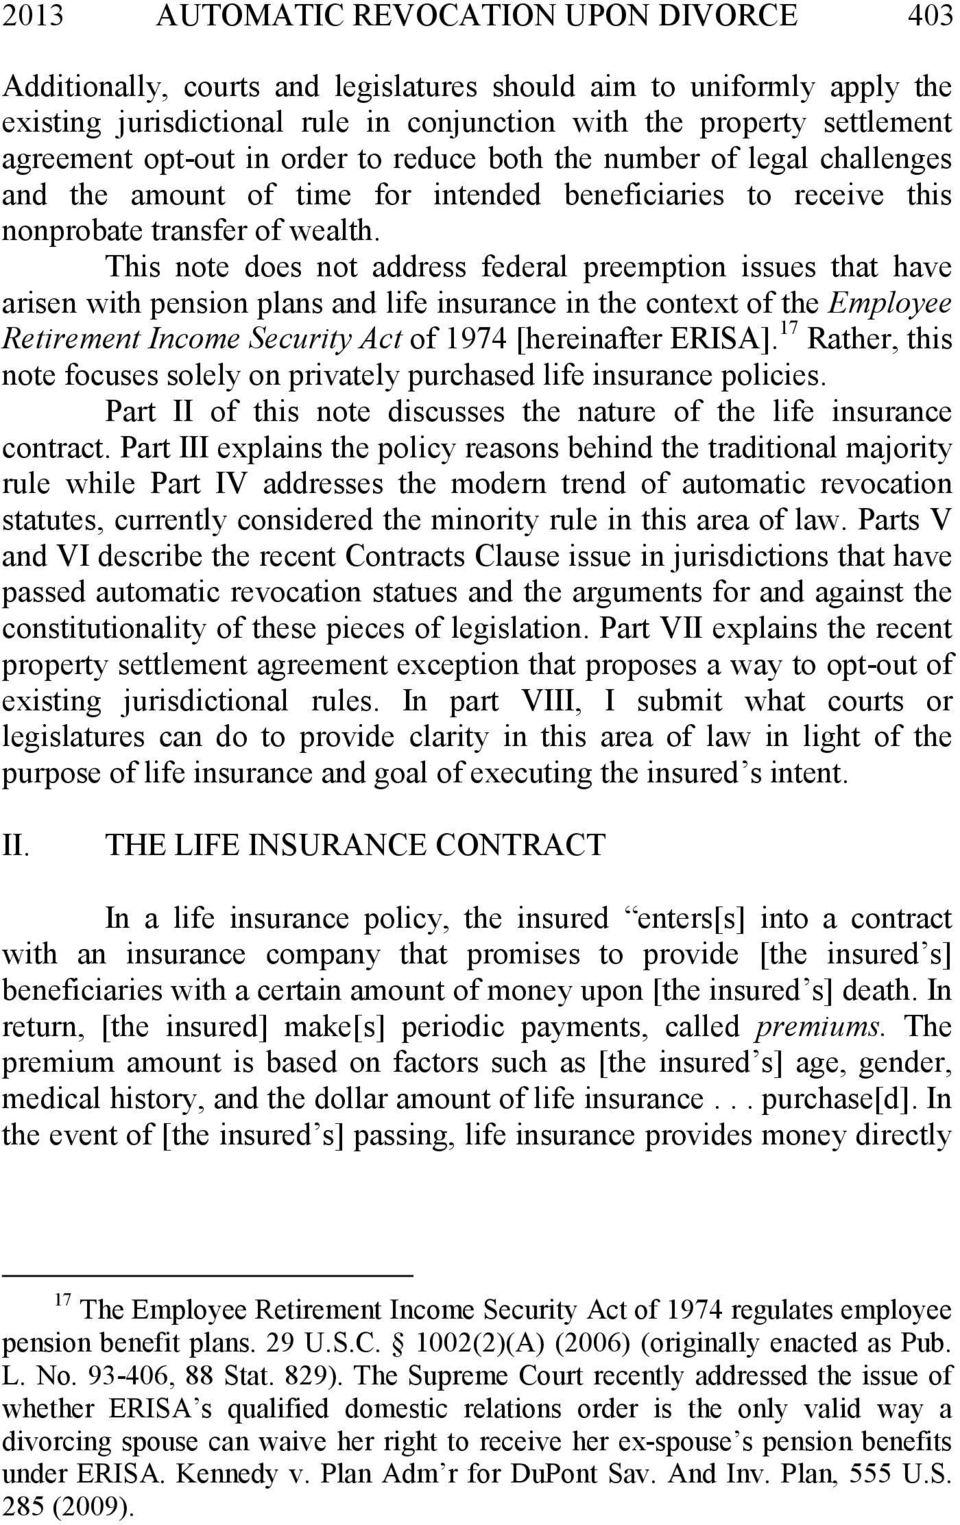 This note does not address federal preemption issues that have arisen with pension plans and life insurance in the context of the Employee Retirement Income Security Act of 1974 [hereinafter ERISA].